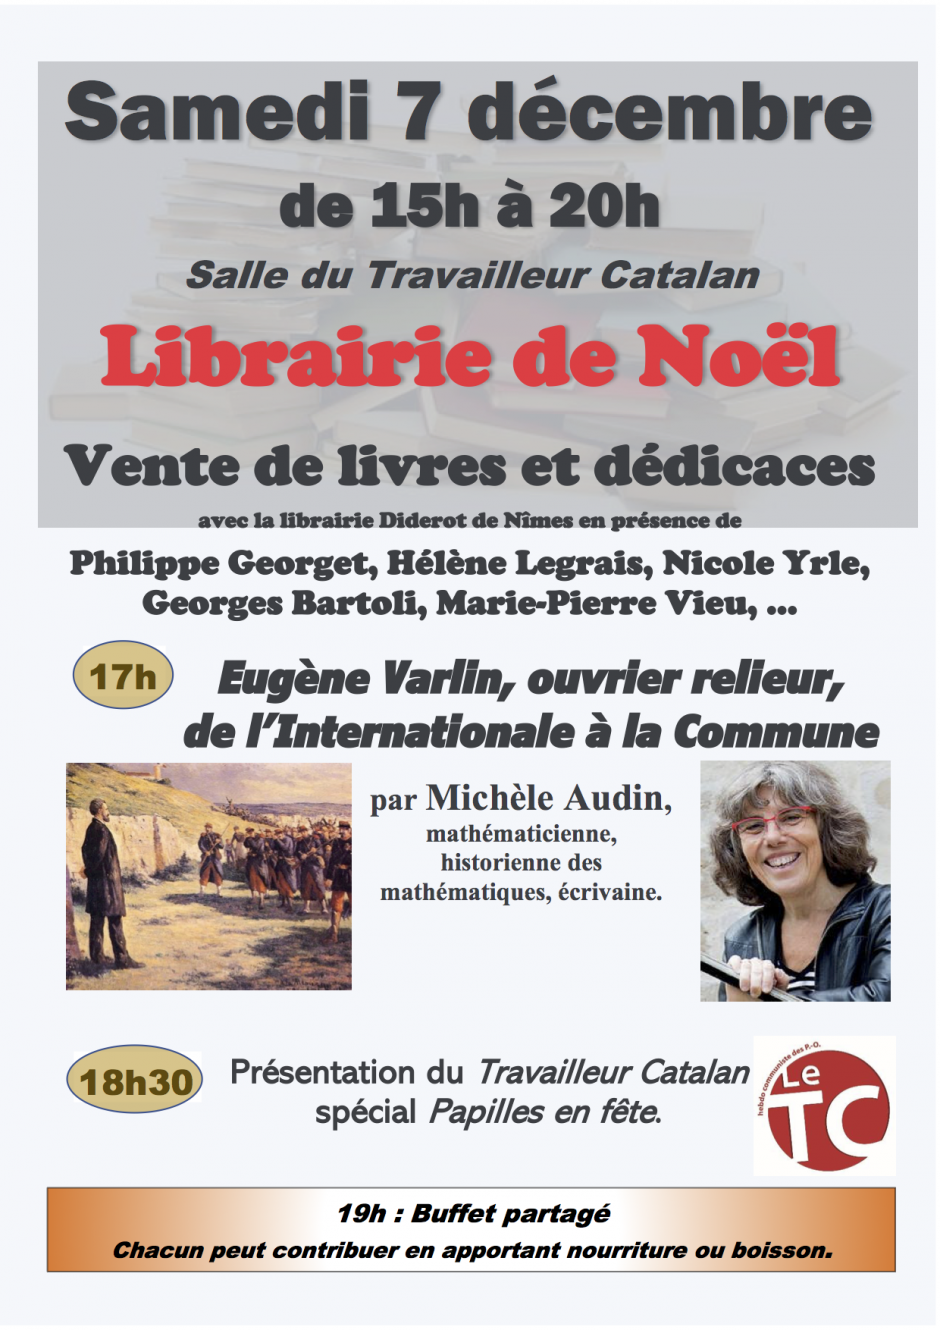 Librairie de Noël du Travailleur Catalan